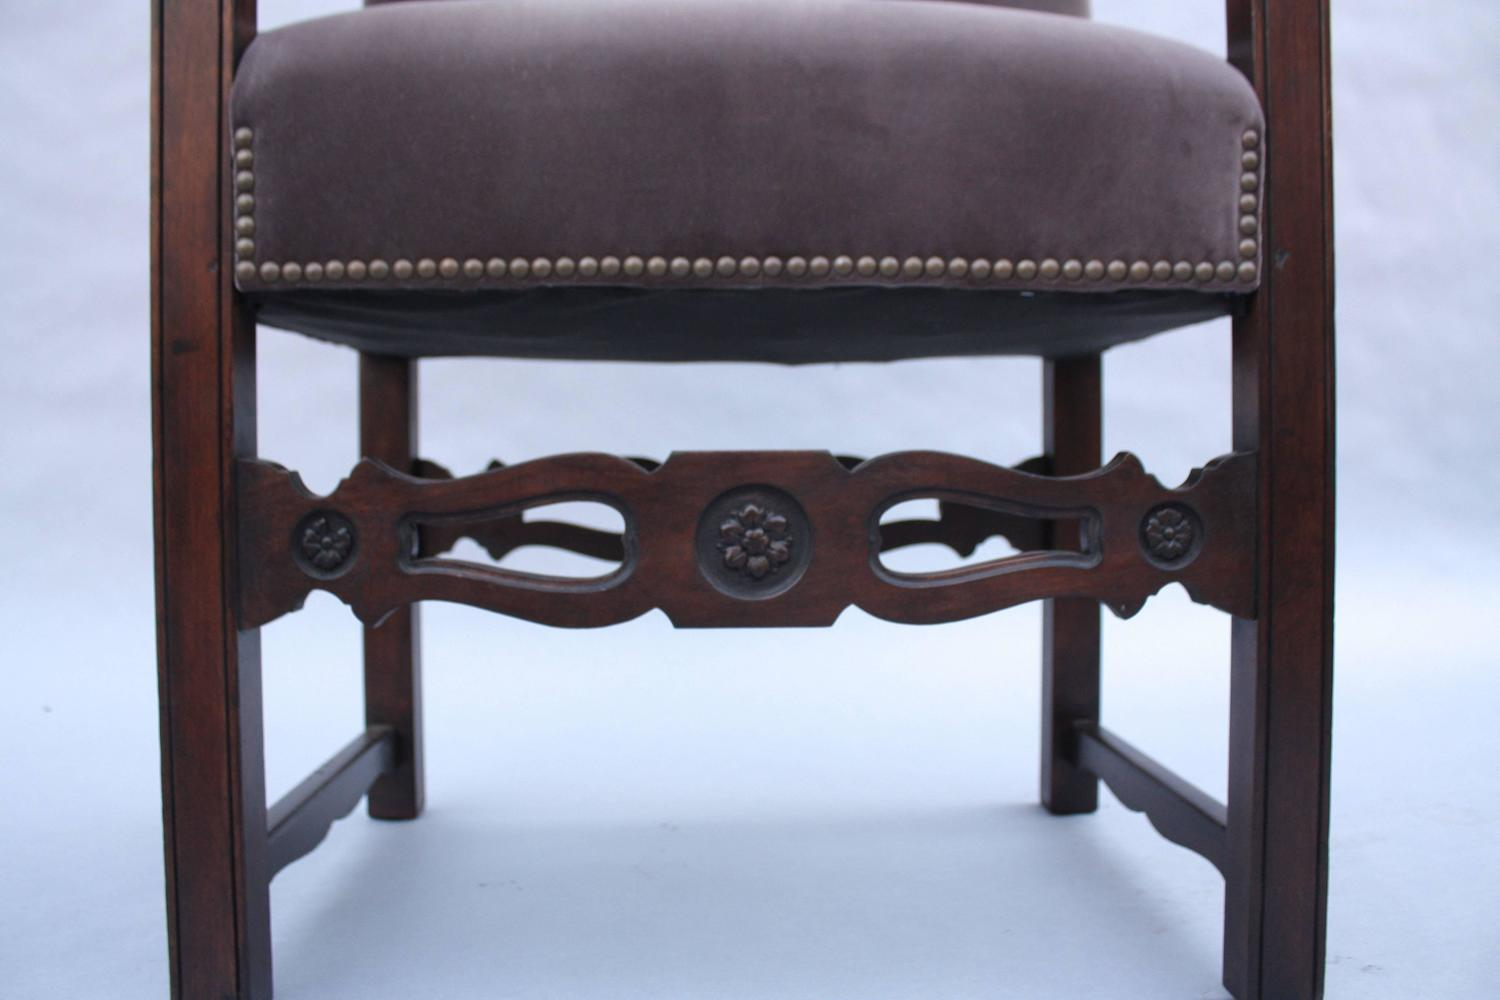 1920s Spanish Revival Armchair For Sale at 1stdibs